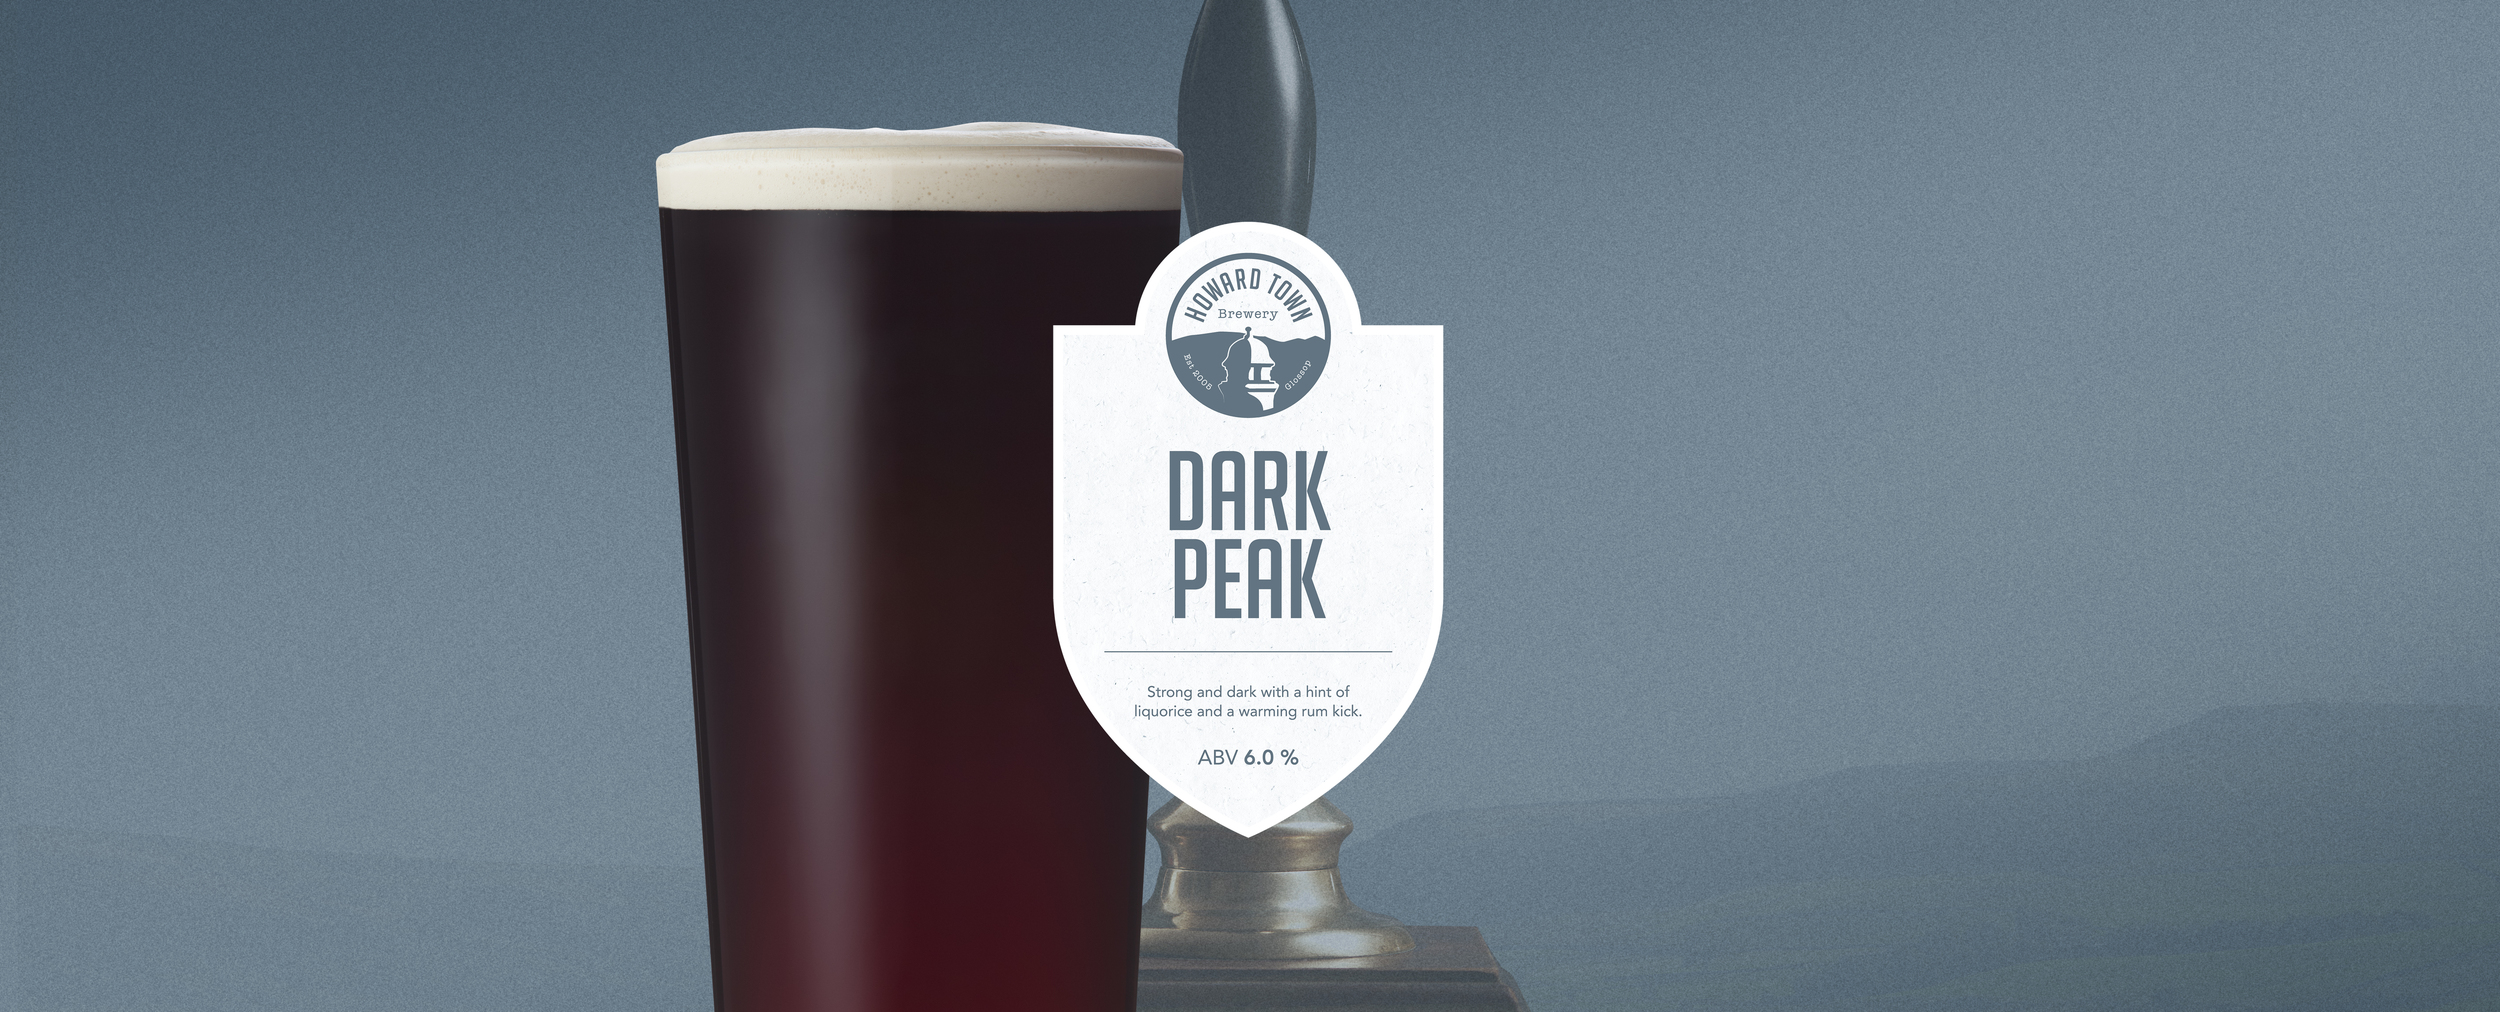 A strong and dark porter with a hint of liquorice and a warming rum kick. 6.0%ABV